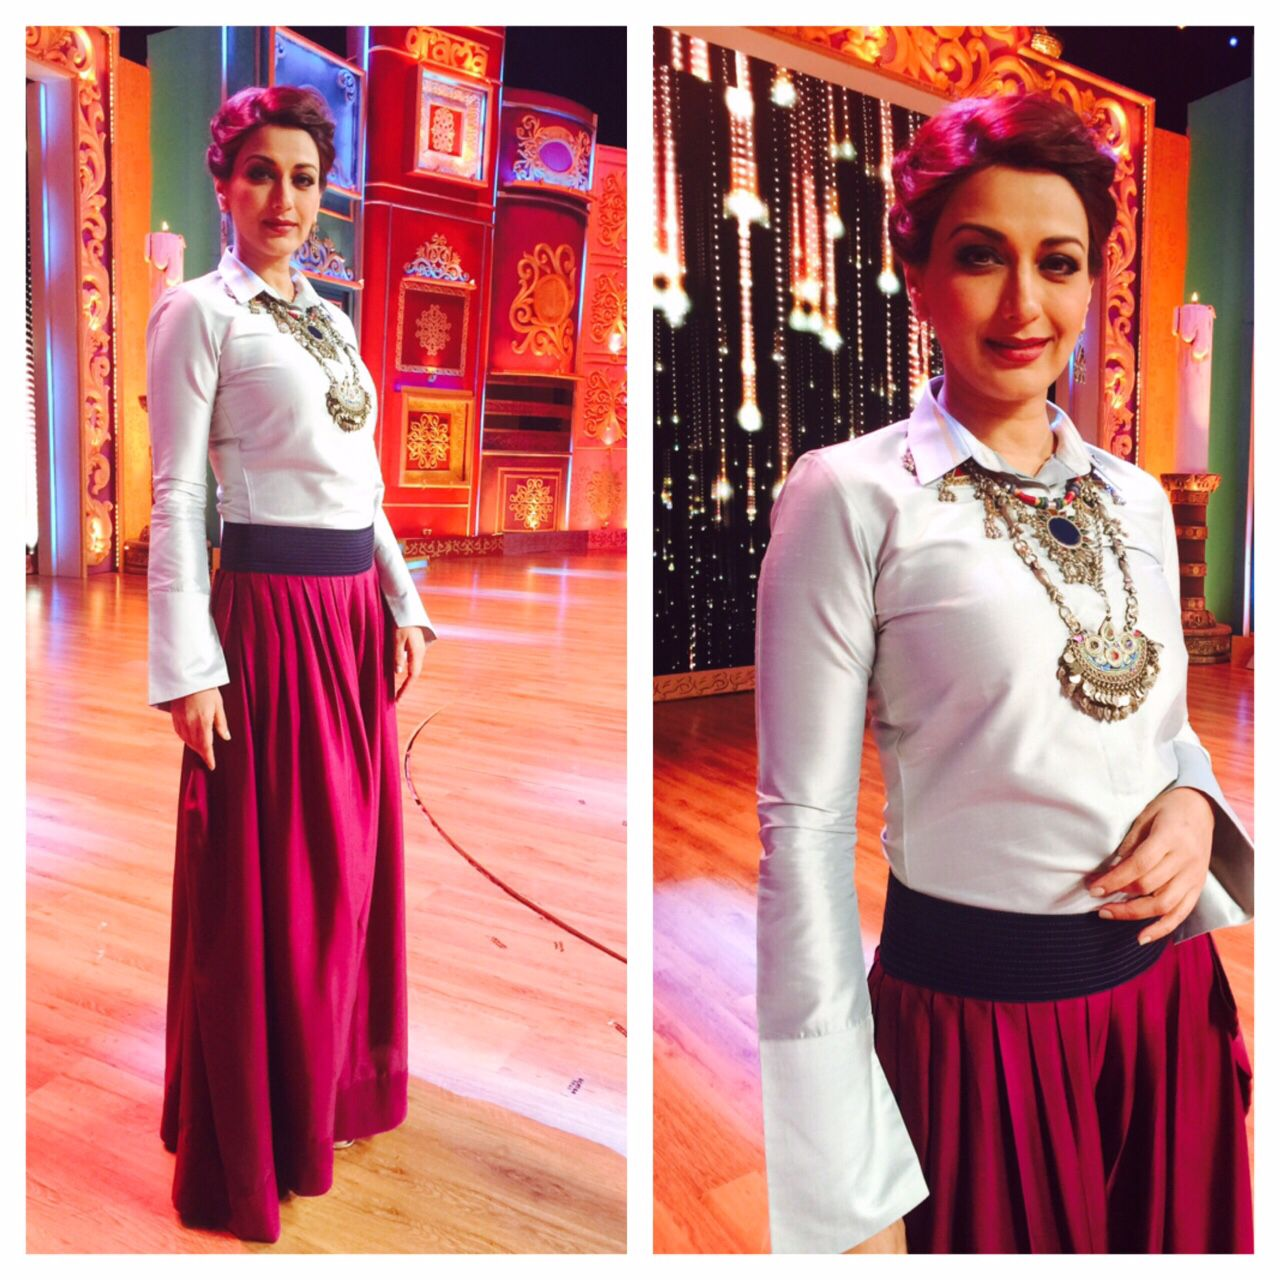 Sonali Bendre Behl in Payal Khandwala as a judge on the